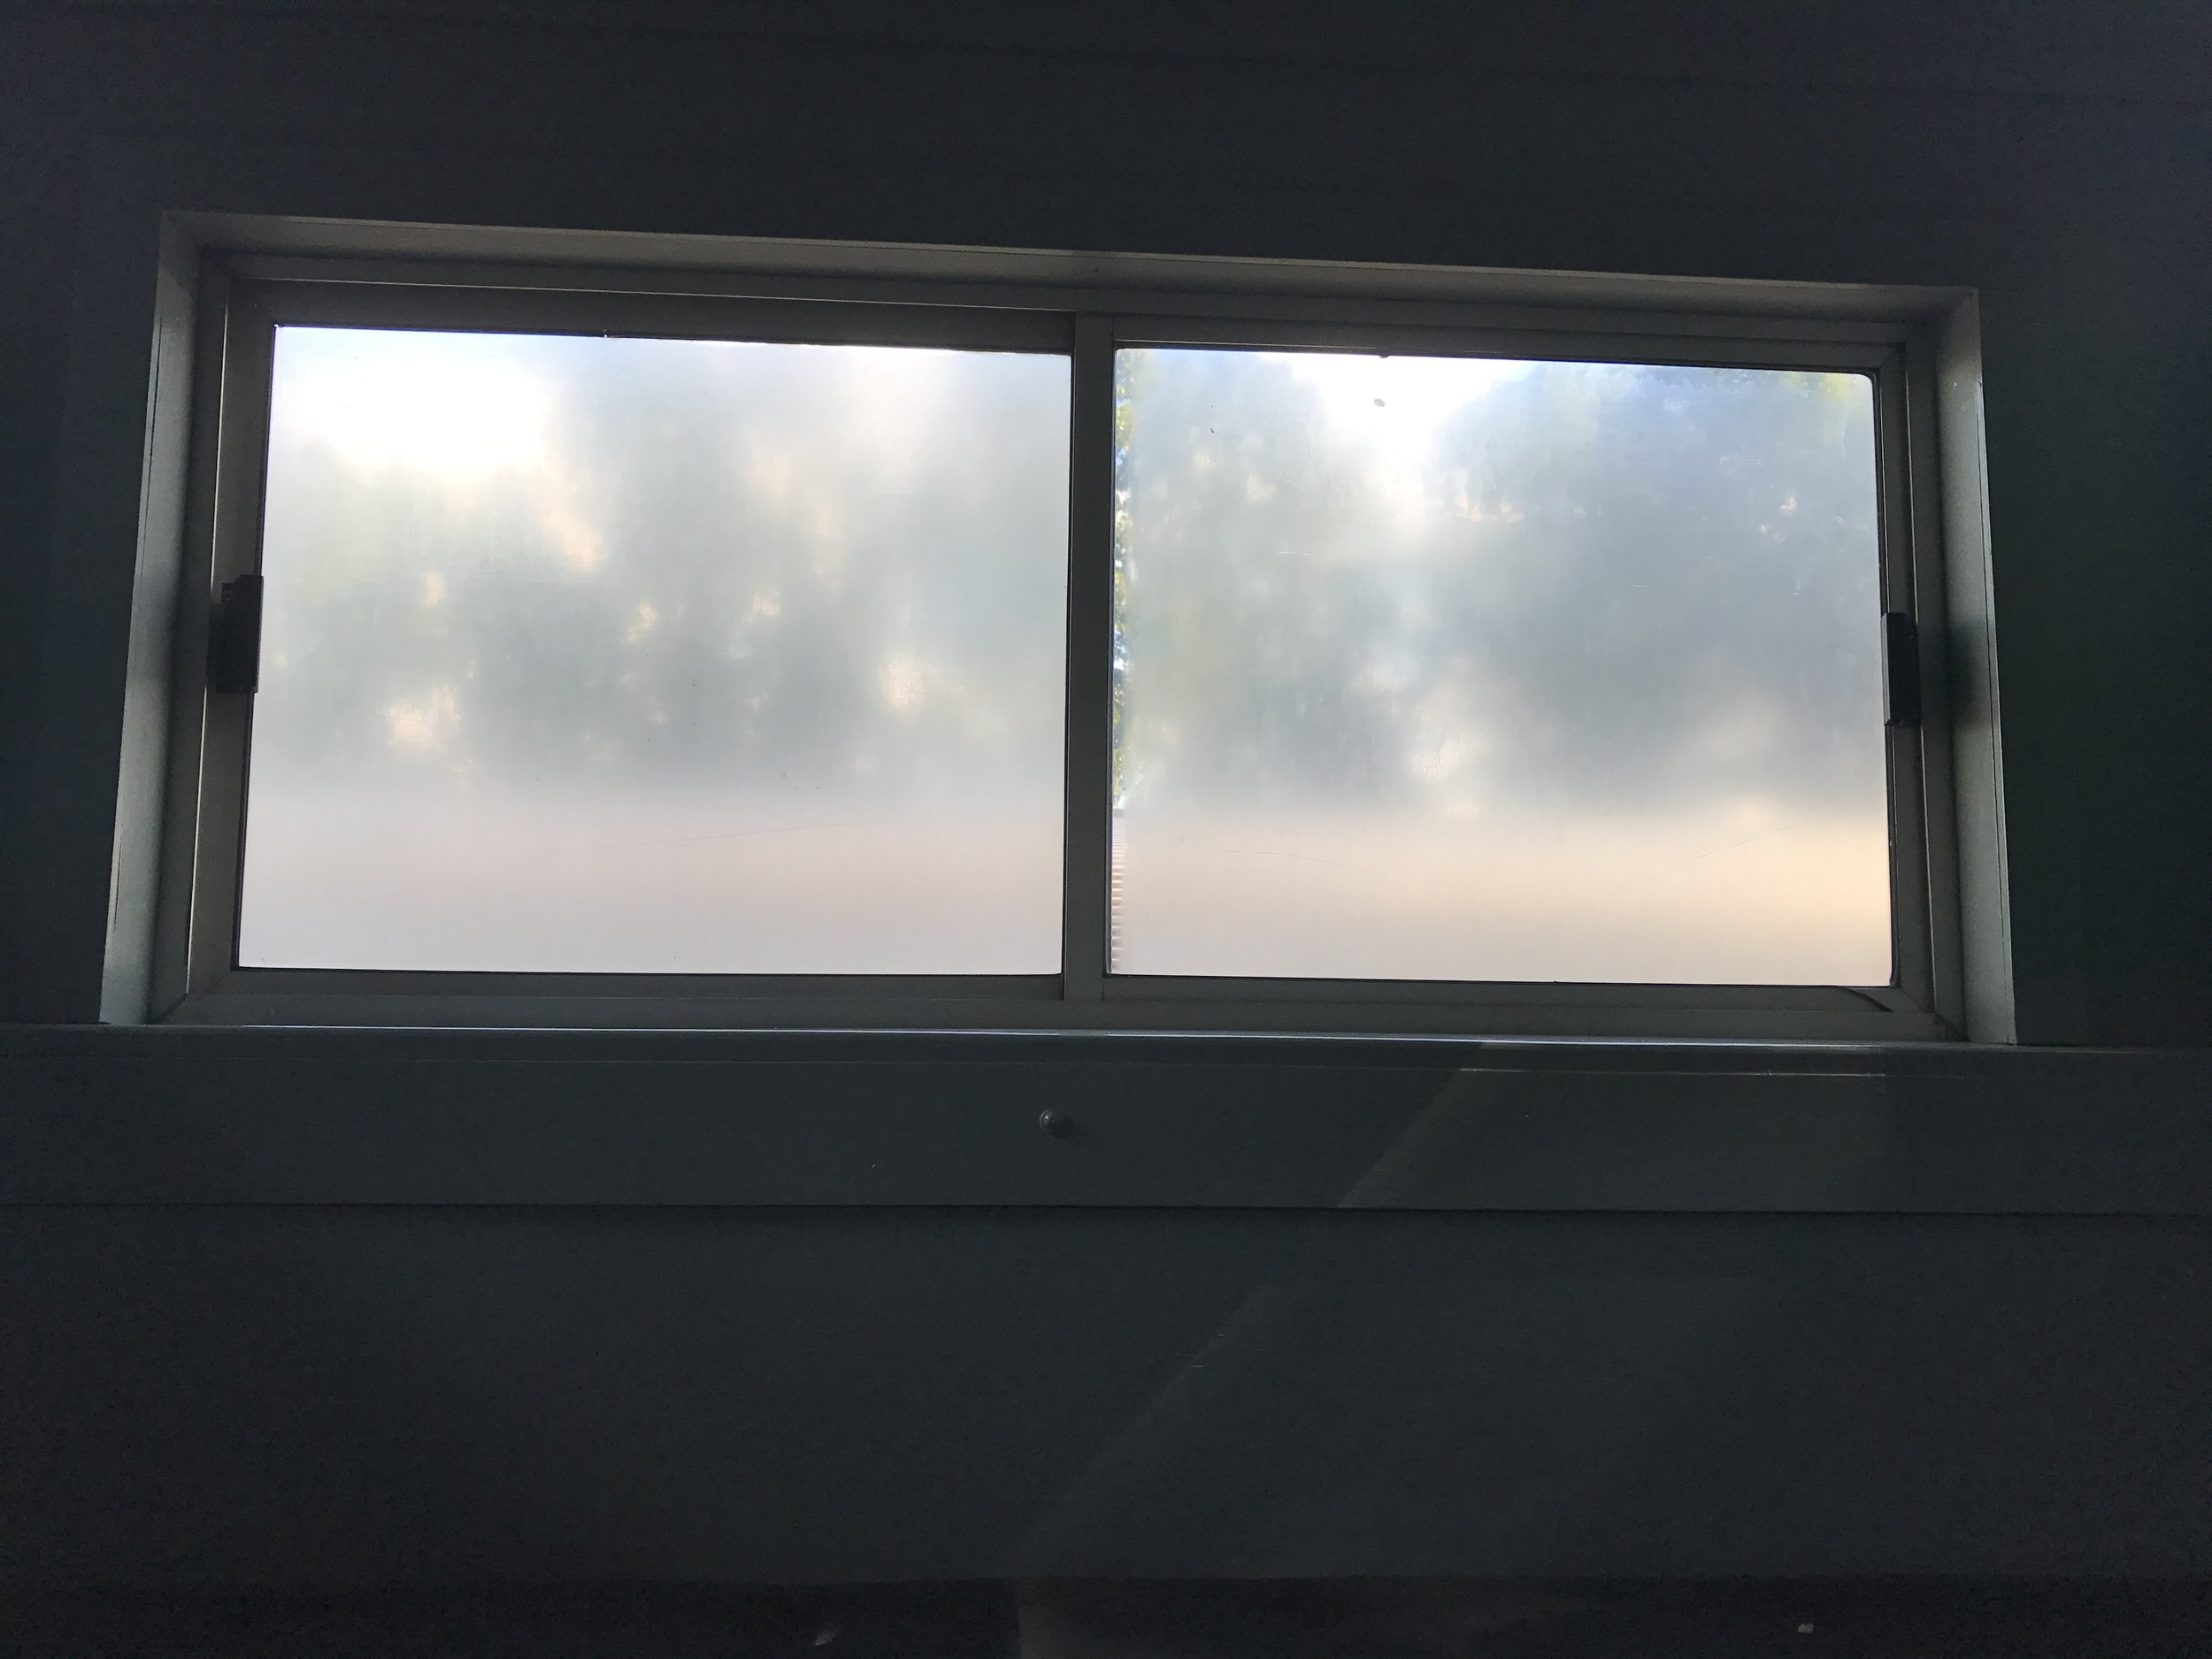 The faded Lexan windows before being replaced.